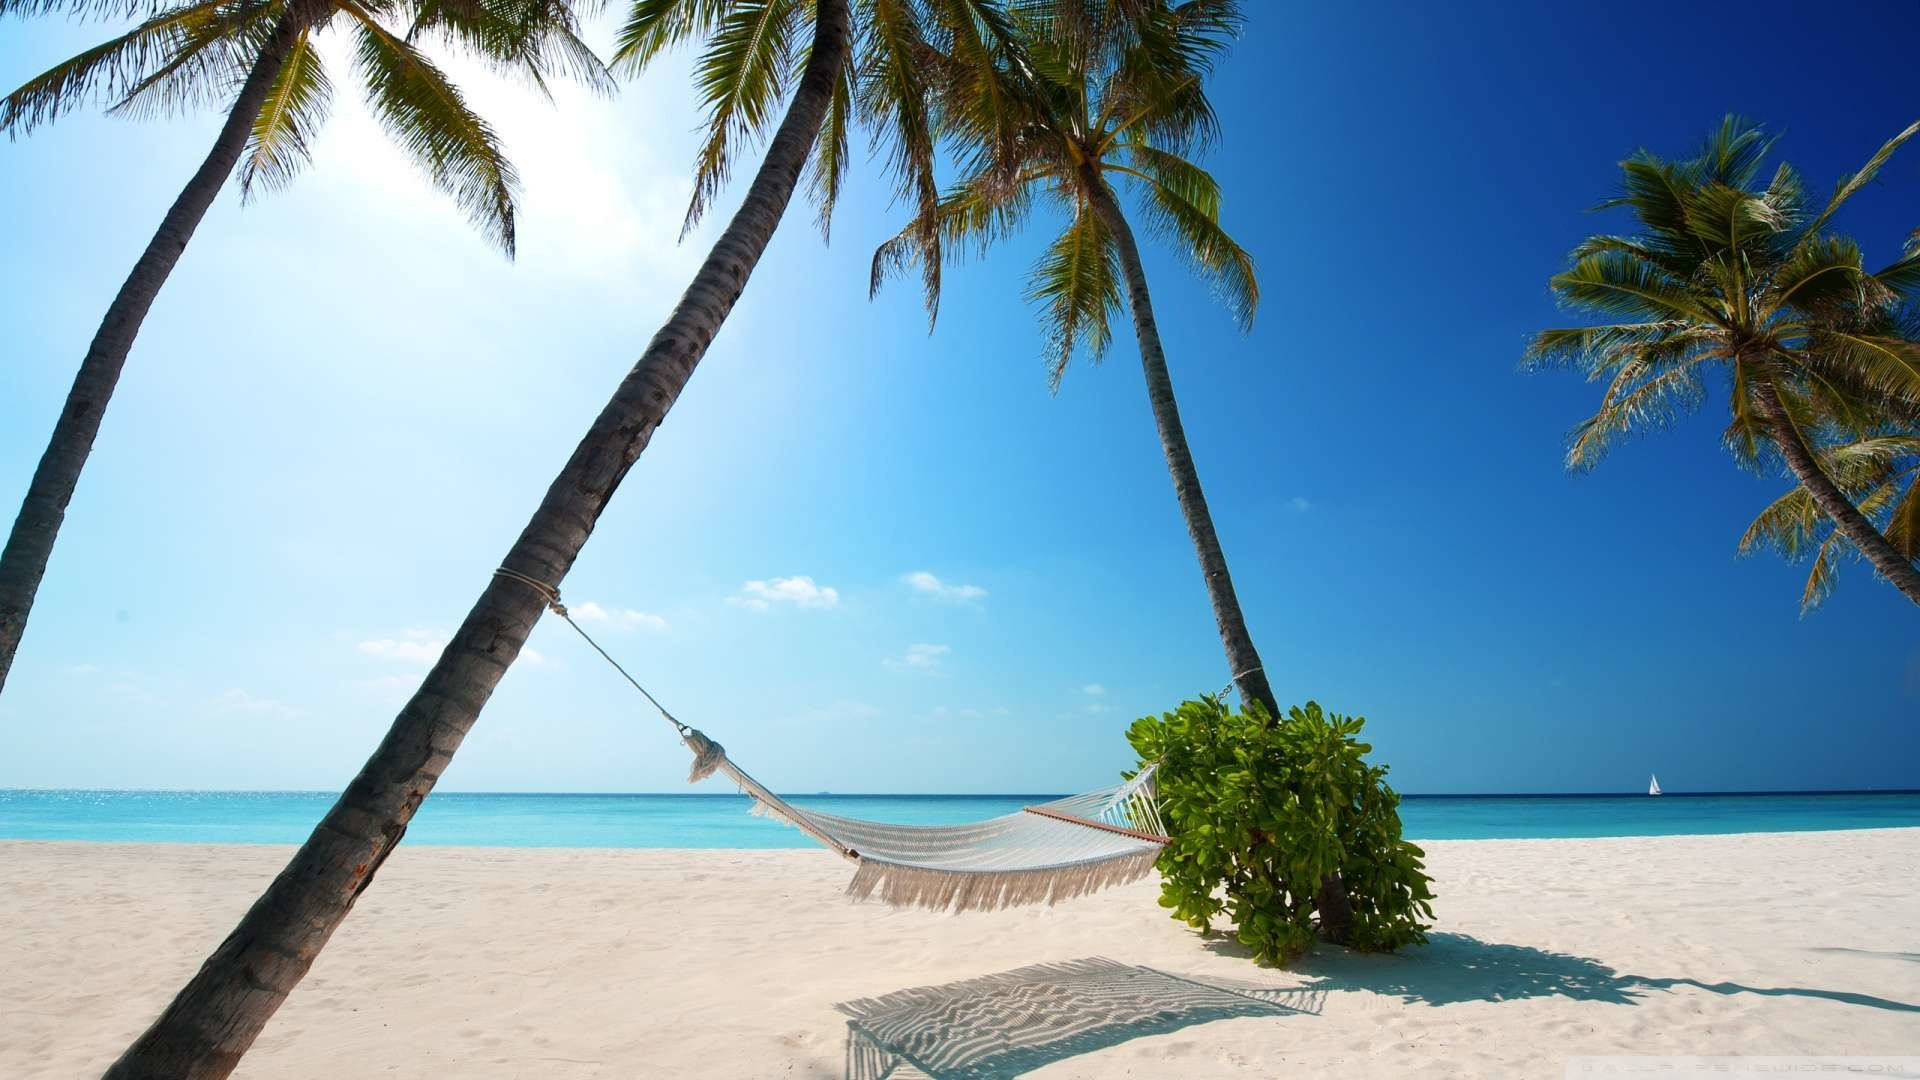 Hd Tropical Island Beach Paradise Wallpapers And Backgrounds: HD Beach Wallpapers 1080p (68+ Images